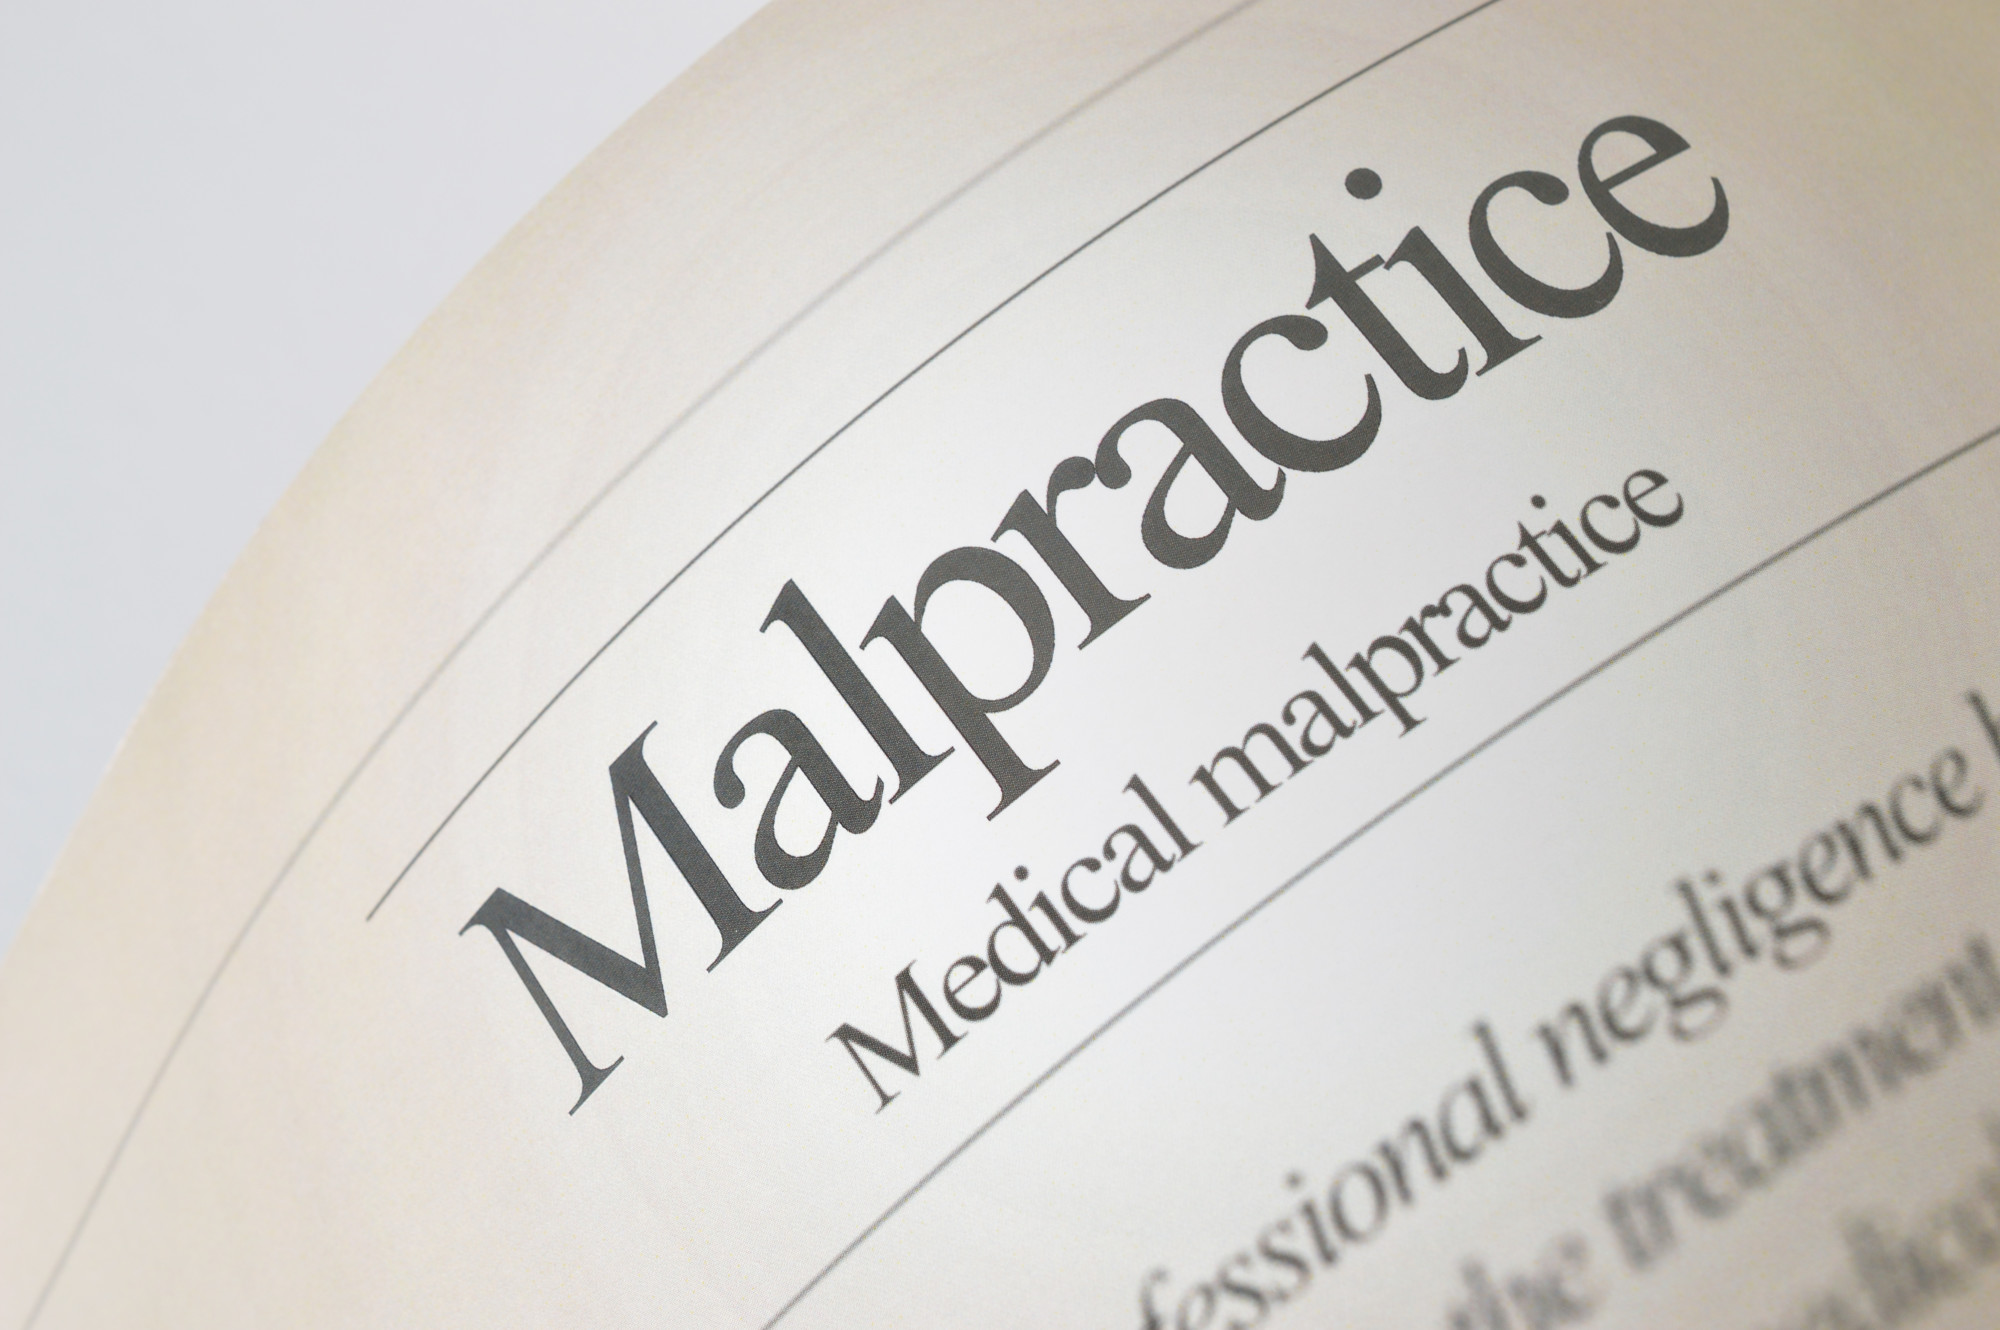 page on a book with a title maplractice medical insurnace